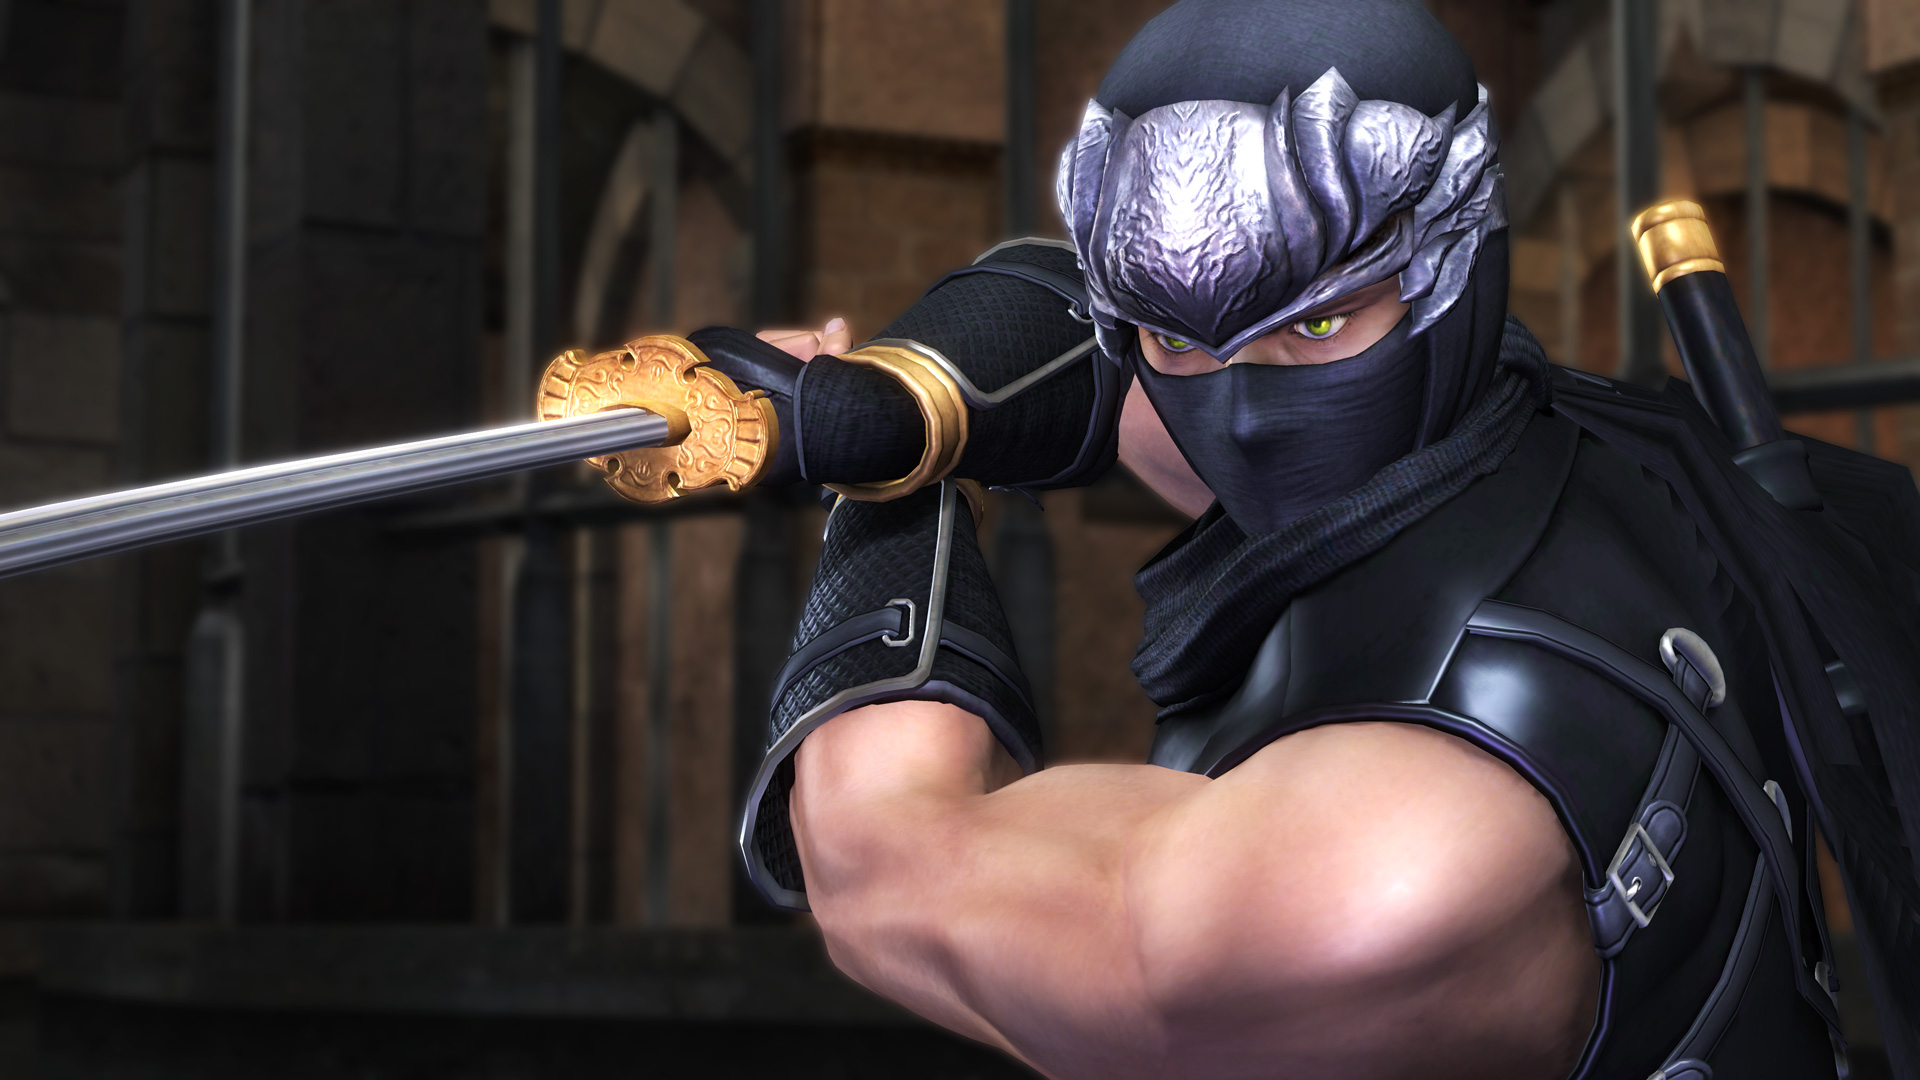 ninja gaiden | Leviathyn - photo#50